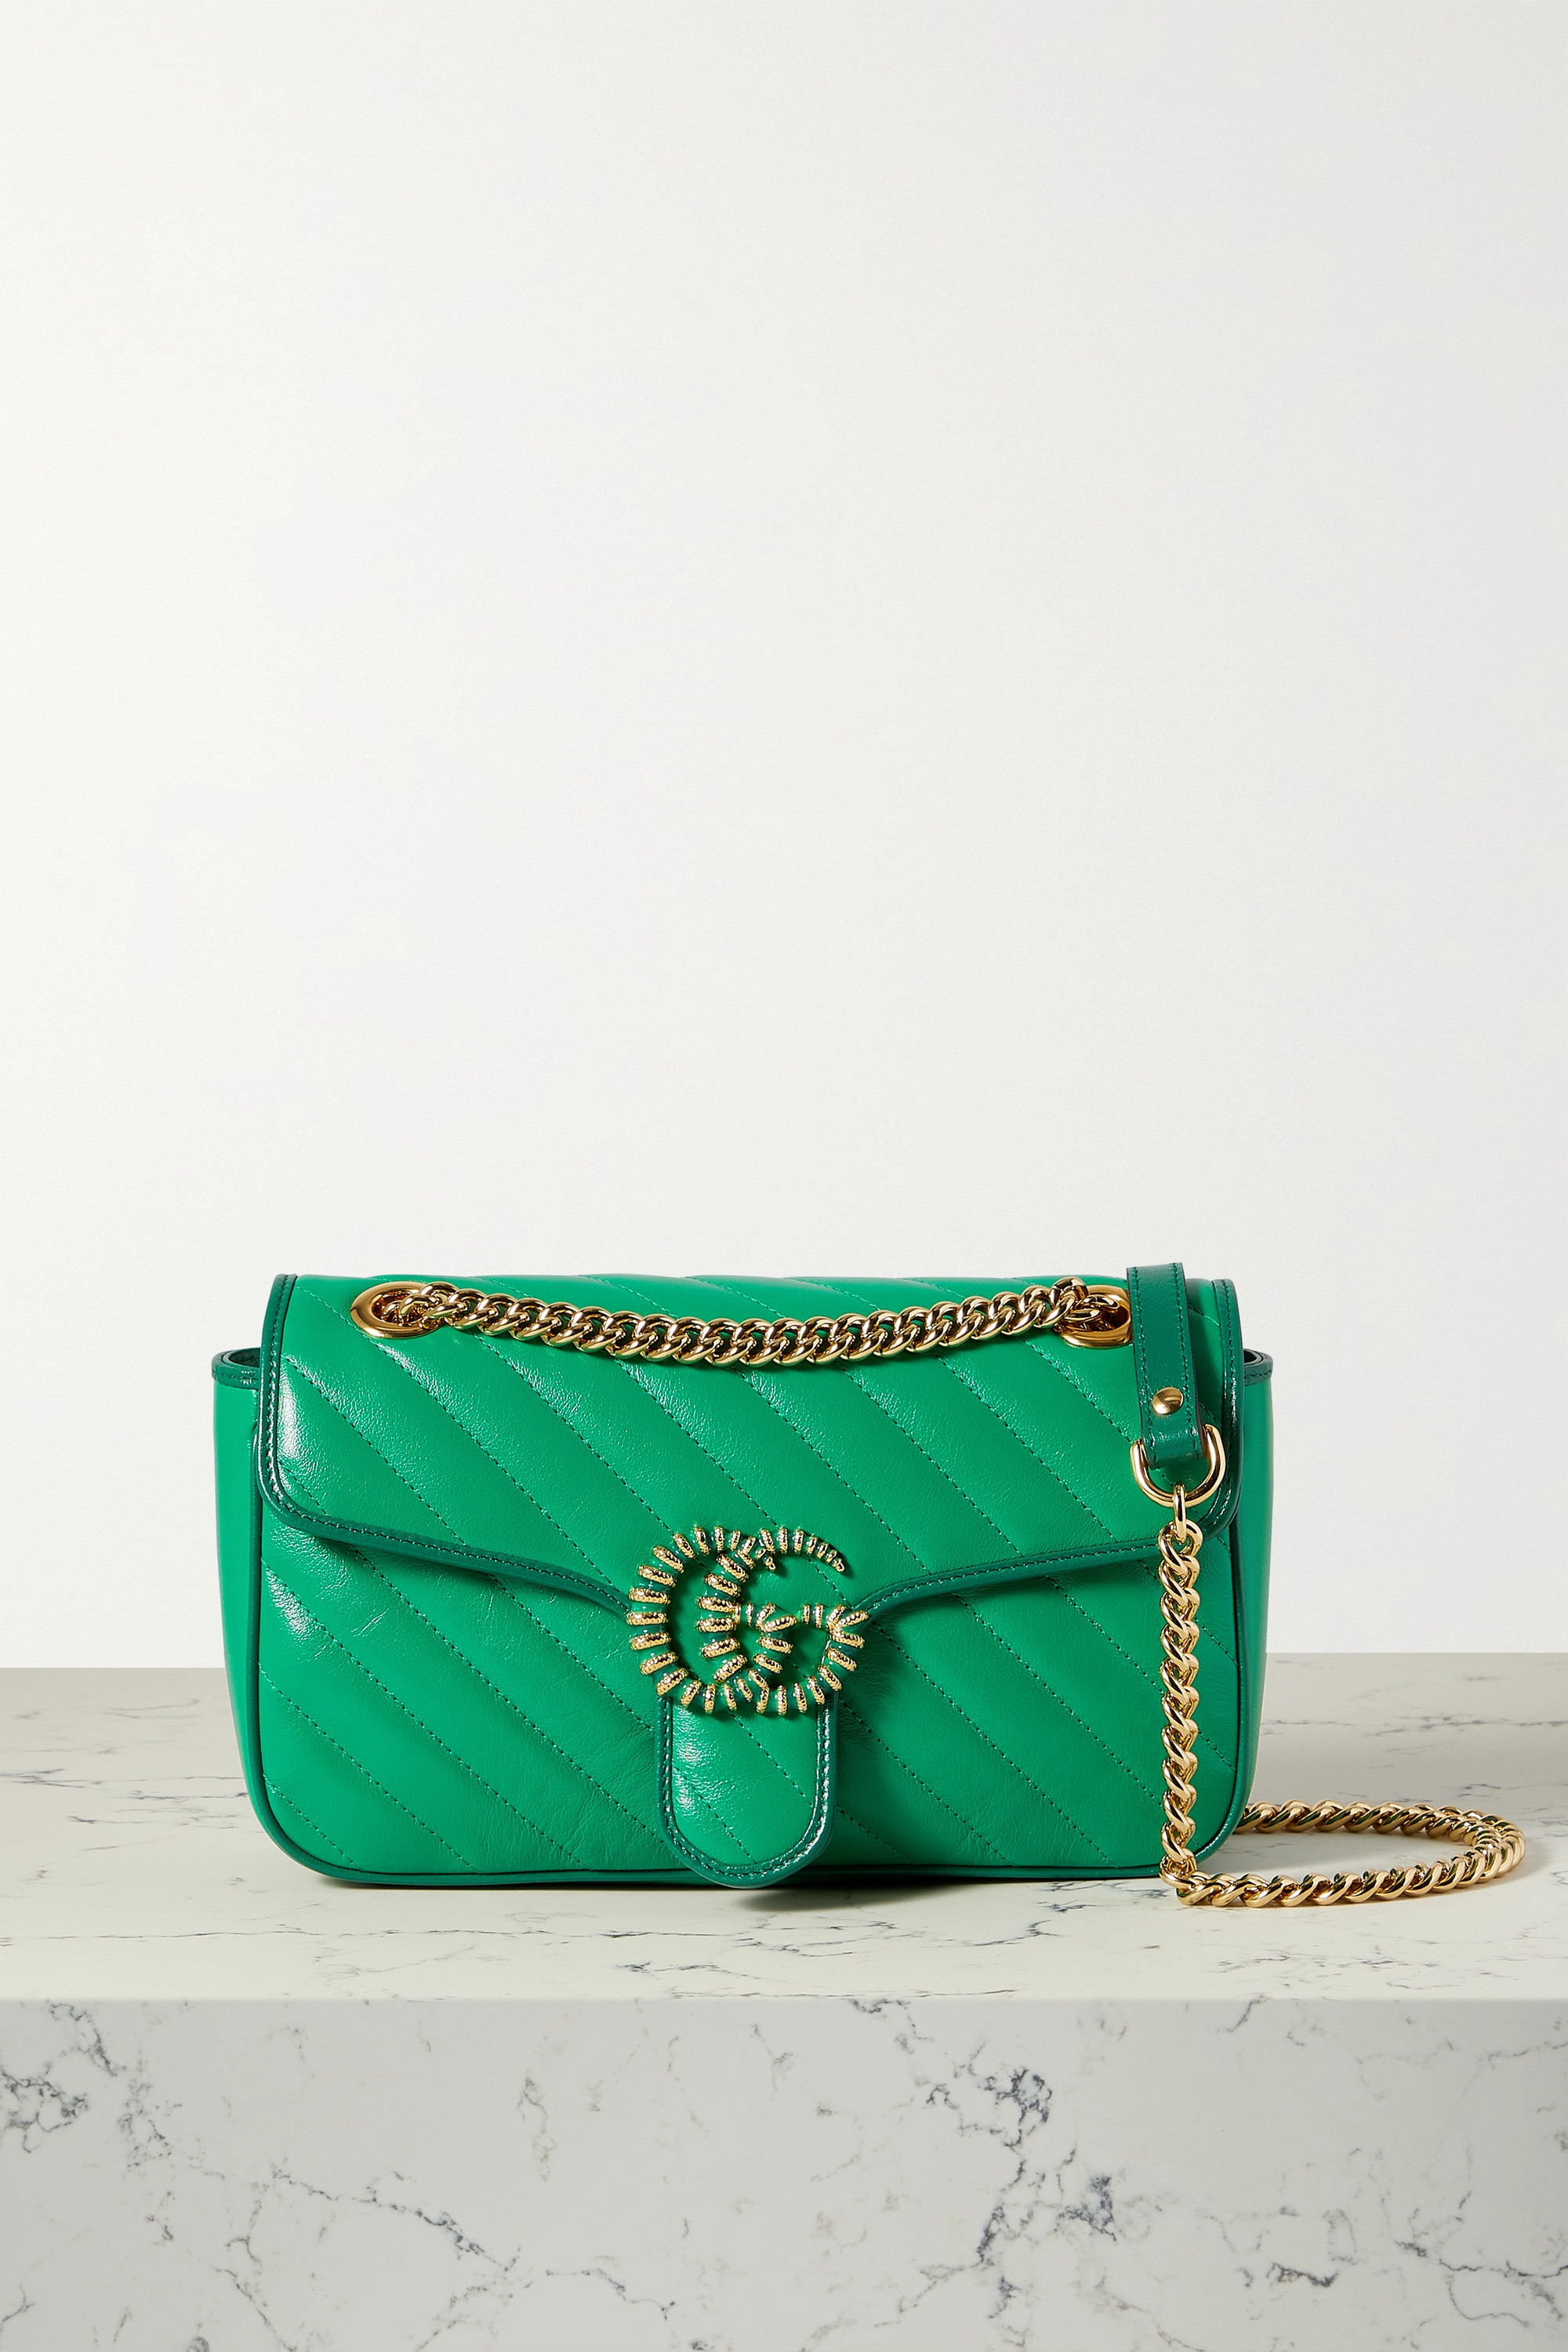 Gucci GG Marmont 2.0 small embellished quilted leather shoulder bag